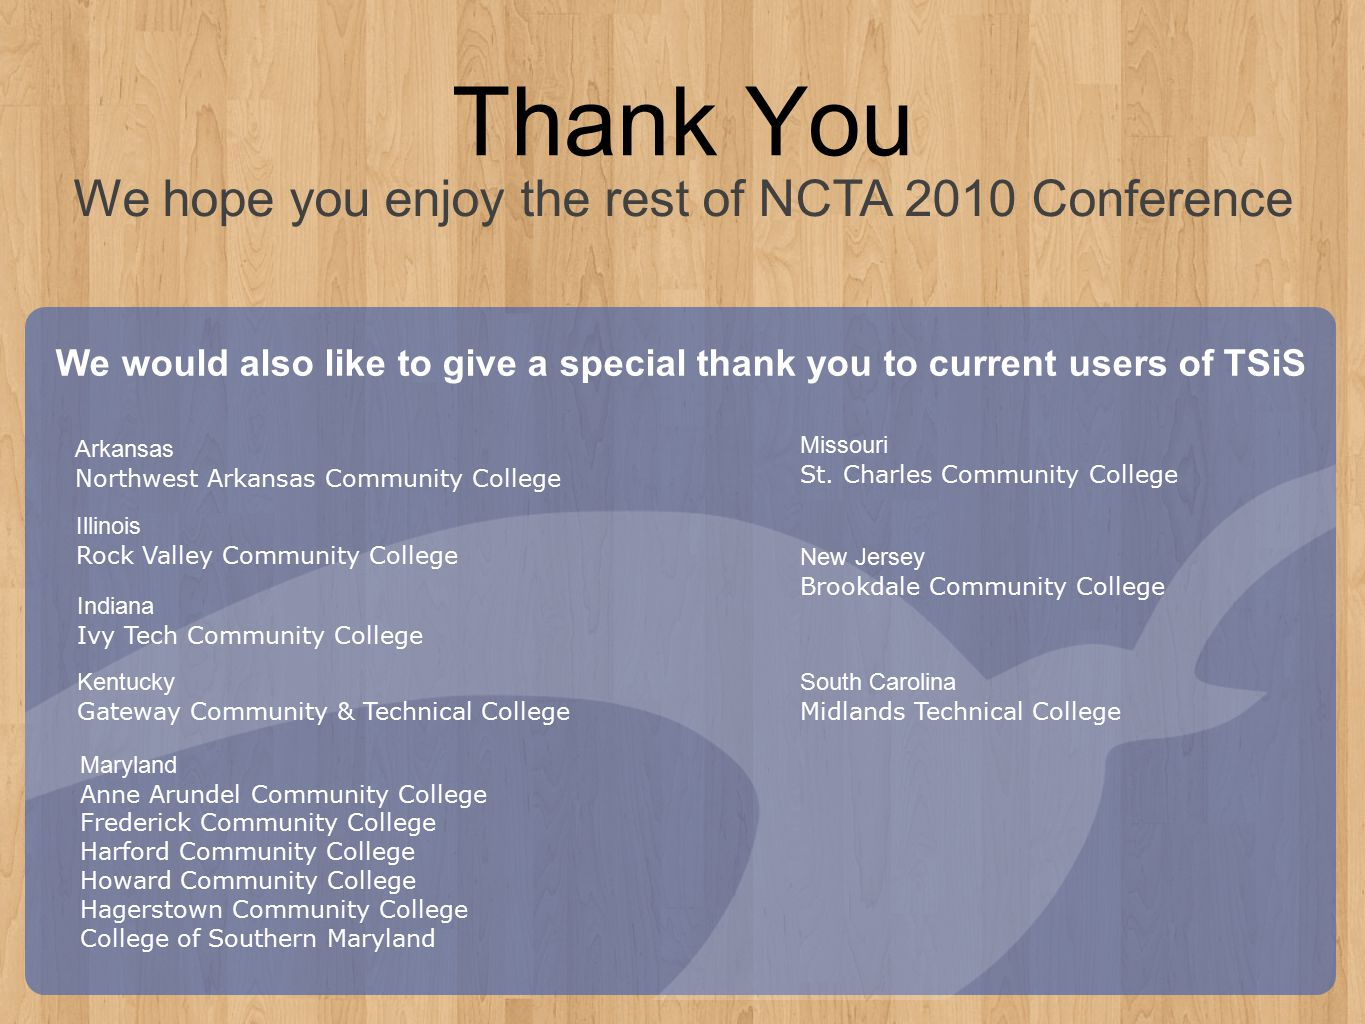 Thank You We hope you enjoy the rest of NCTA 2010 Conference We would also like to give a special thank you to current users of TSiS Maryland Anne Arundel Community College Frederick Community College Harford Community College Howard Community College Hagerstown Community College College of Southern Maryland Illinois Rock Valley Community College Missouri St.